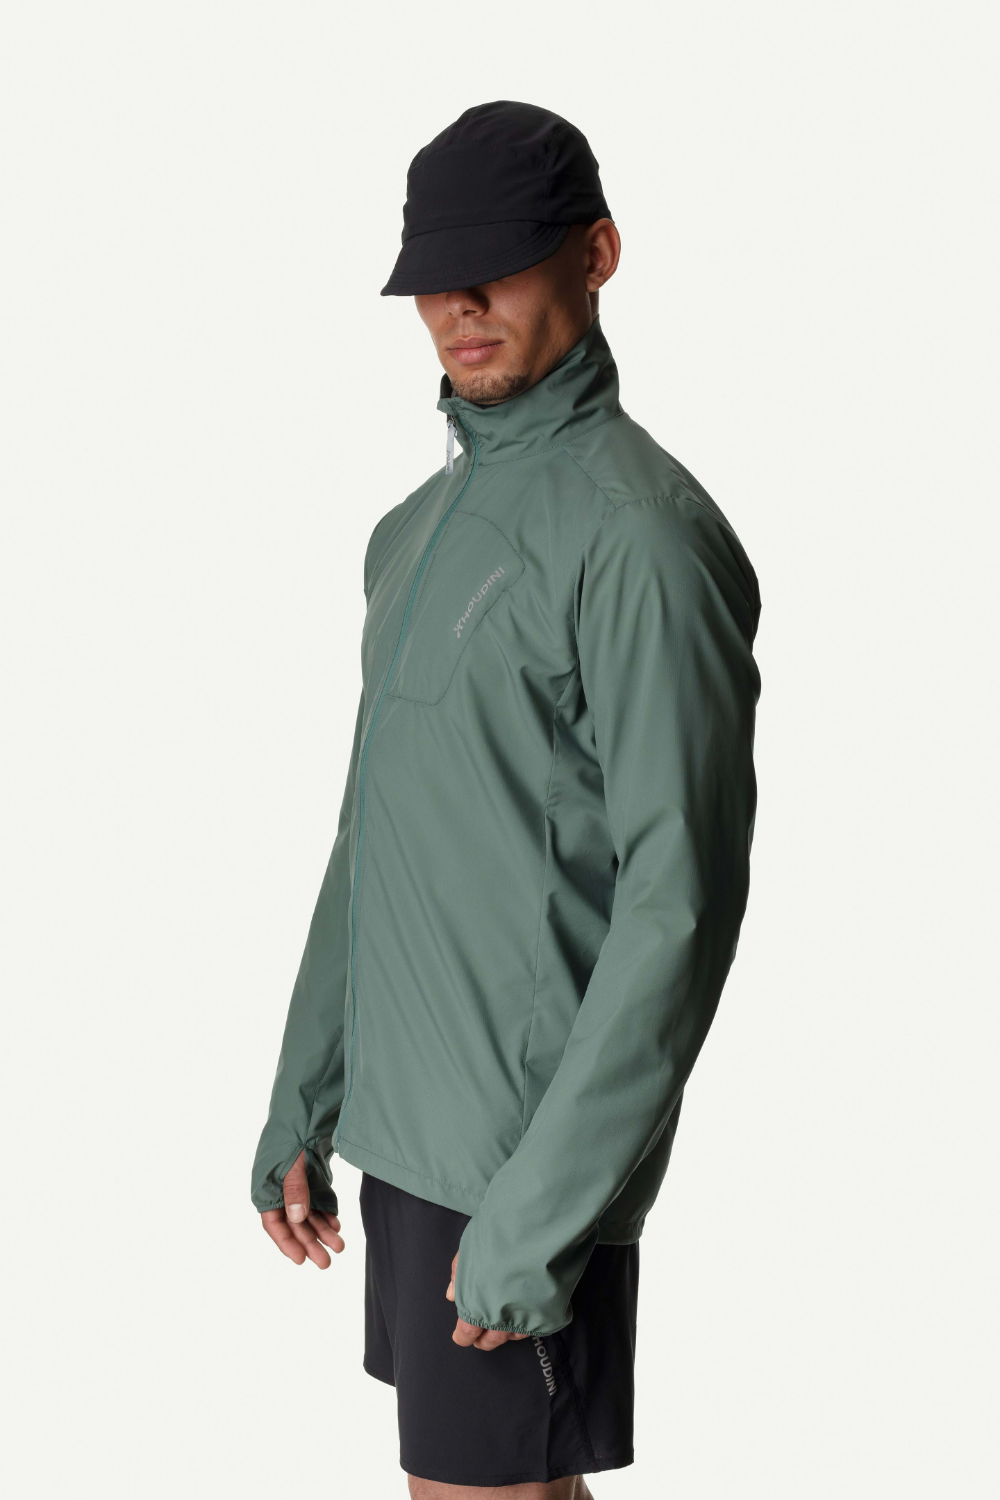 M S Air 2 Air Wind Jacket Houdini Sportswear Wind Jacket Jackets Breathable Jacket